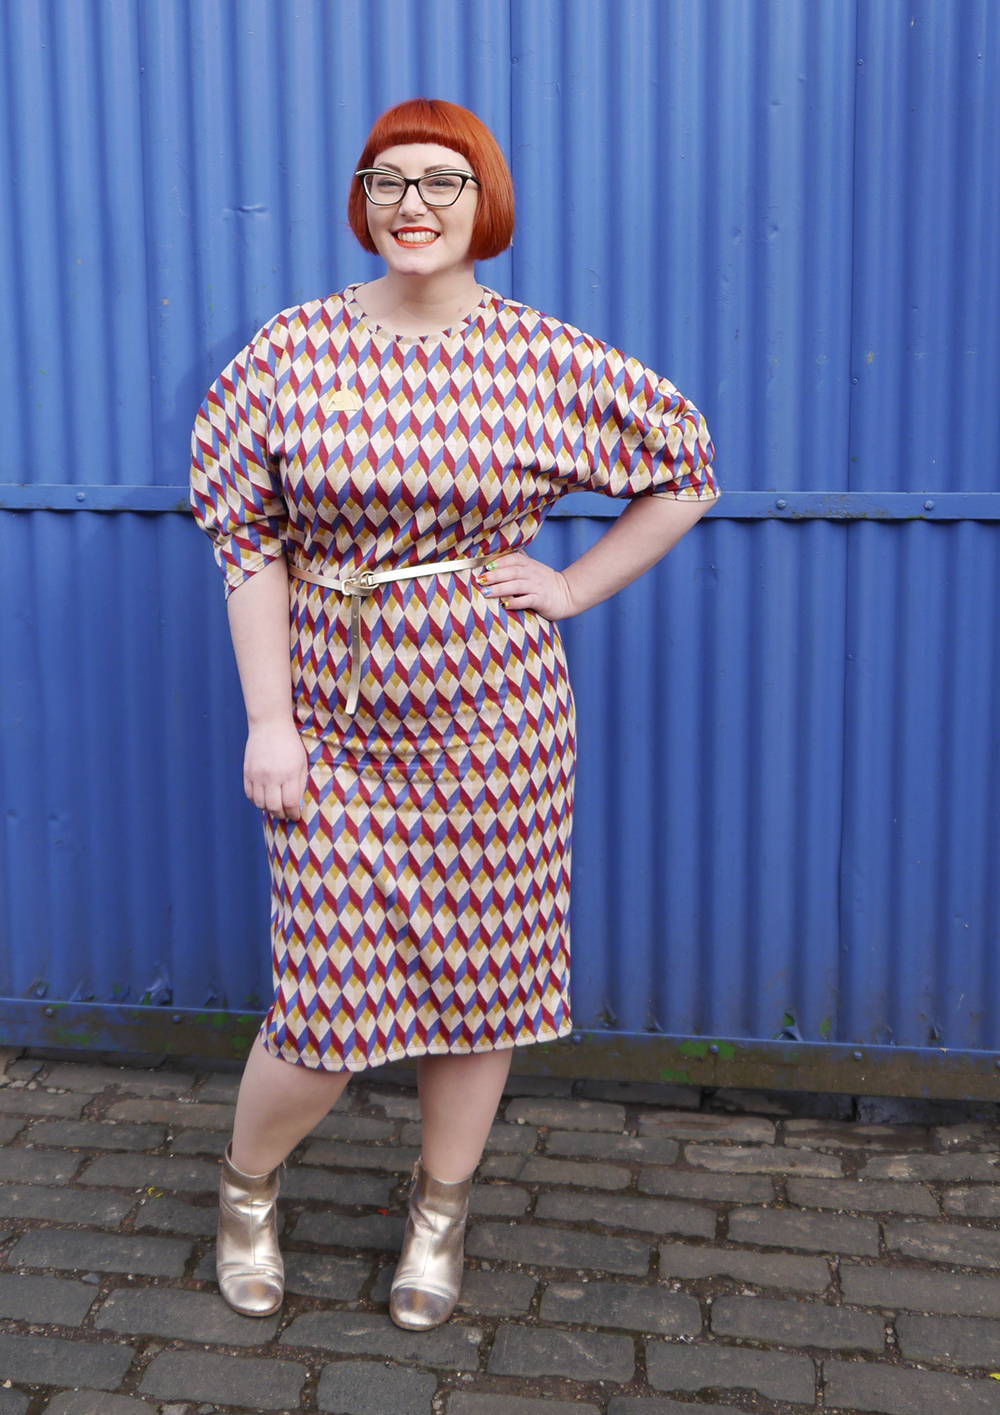 Scottish blogger wearing colourful patterened Zara dress for Spring